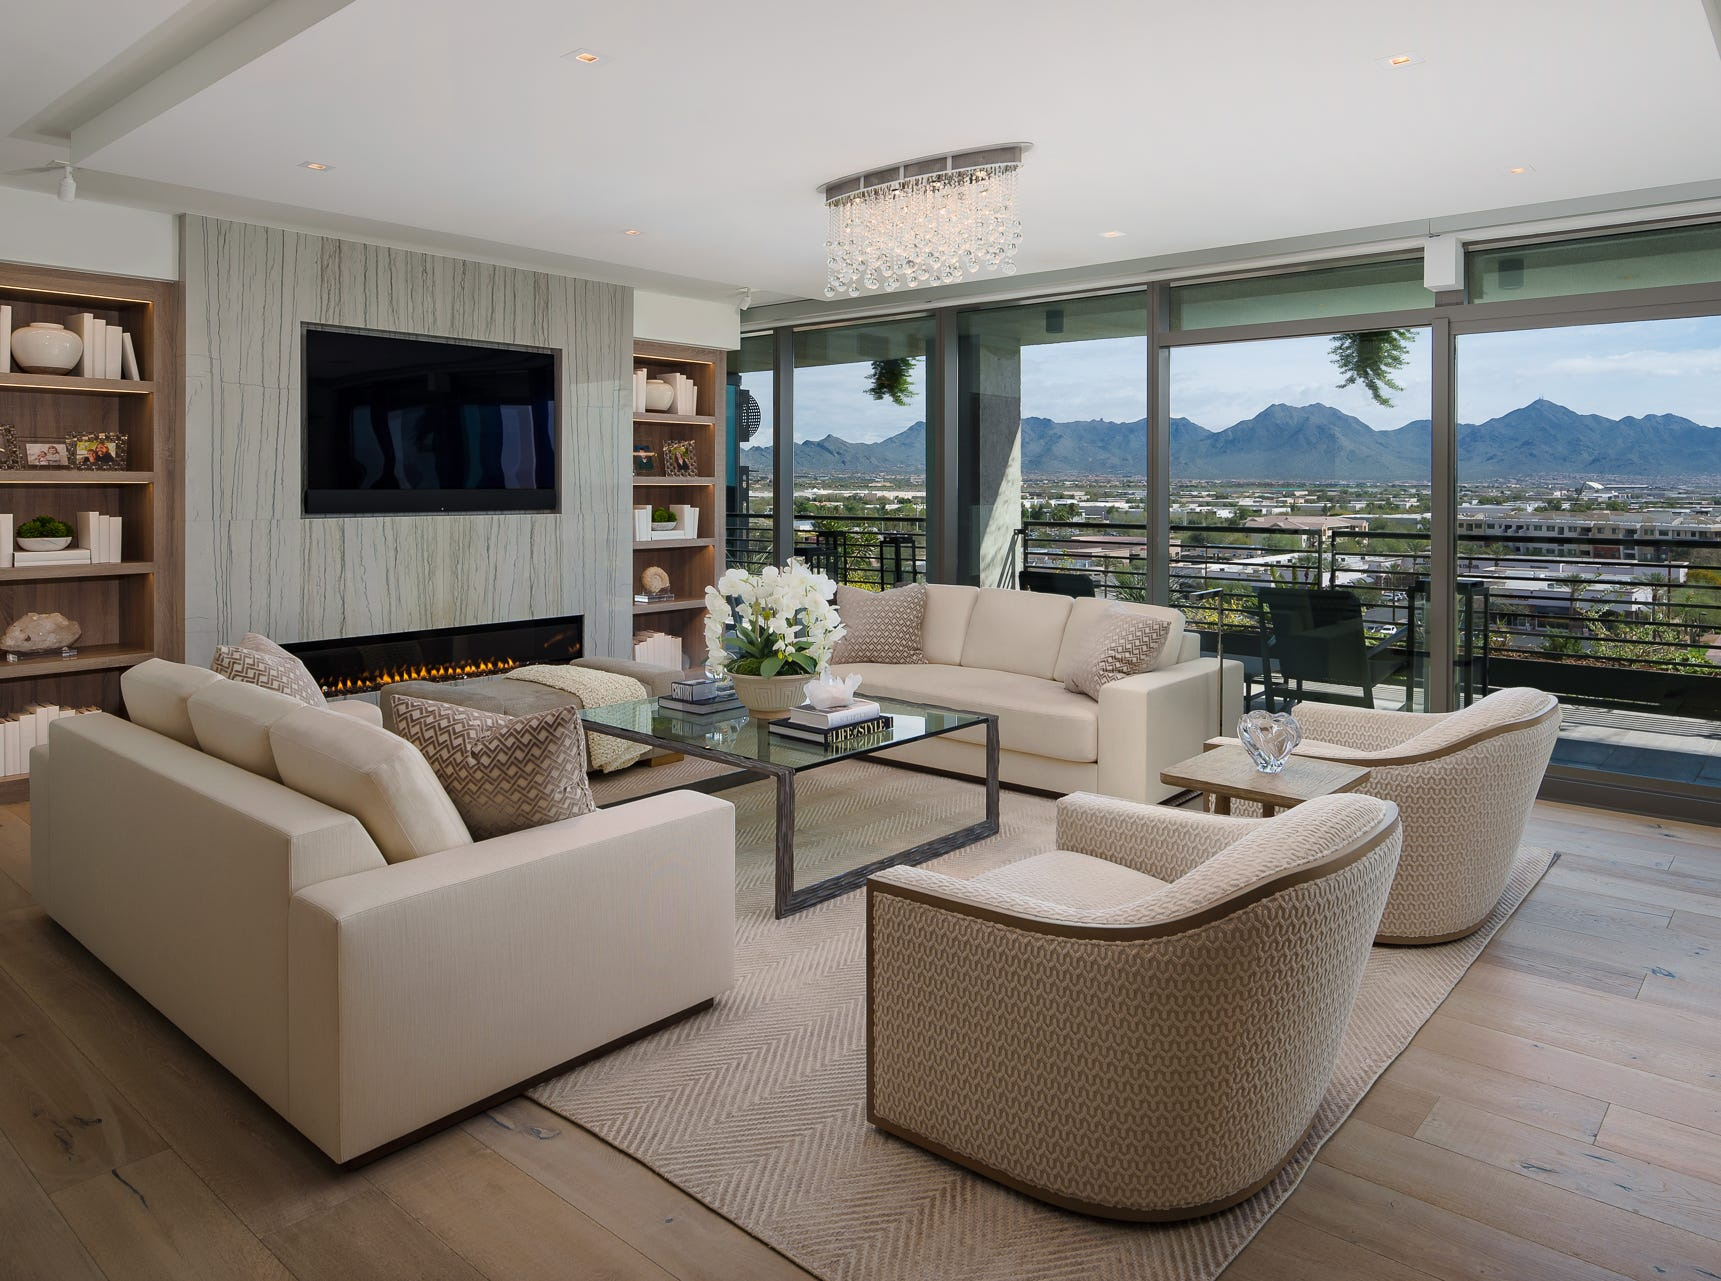 The homeowners purchased three condominiums and worked with architects to design the area into one spacious home.